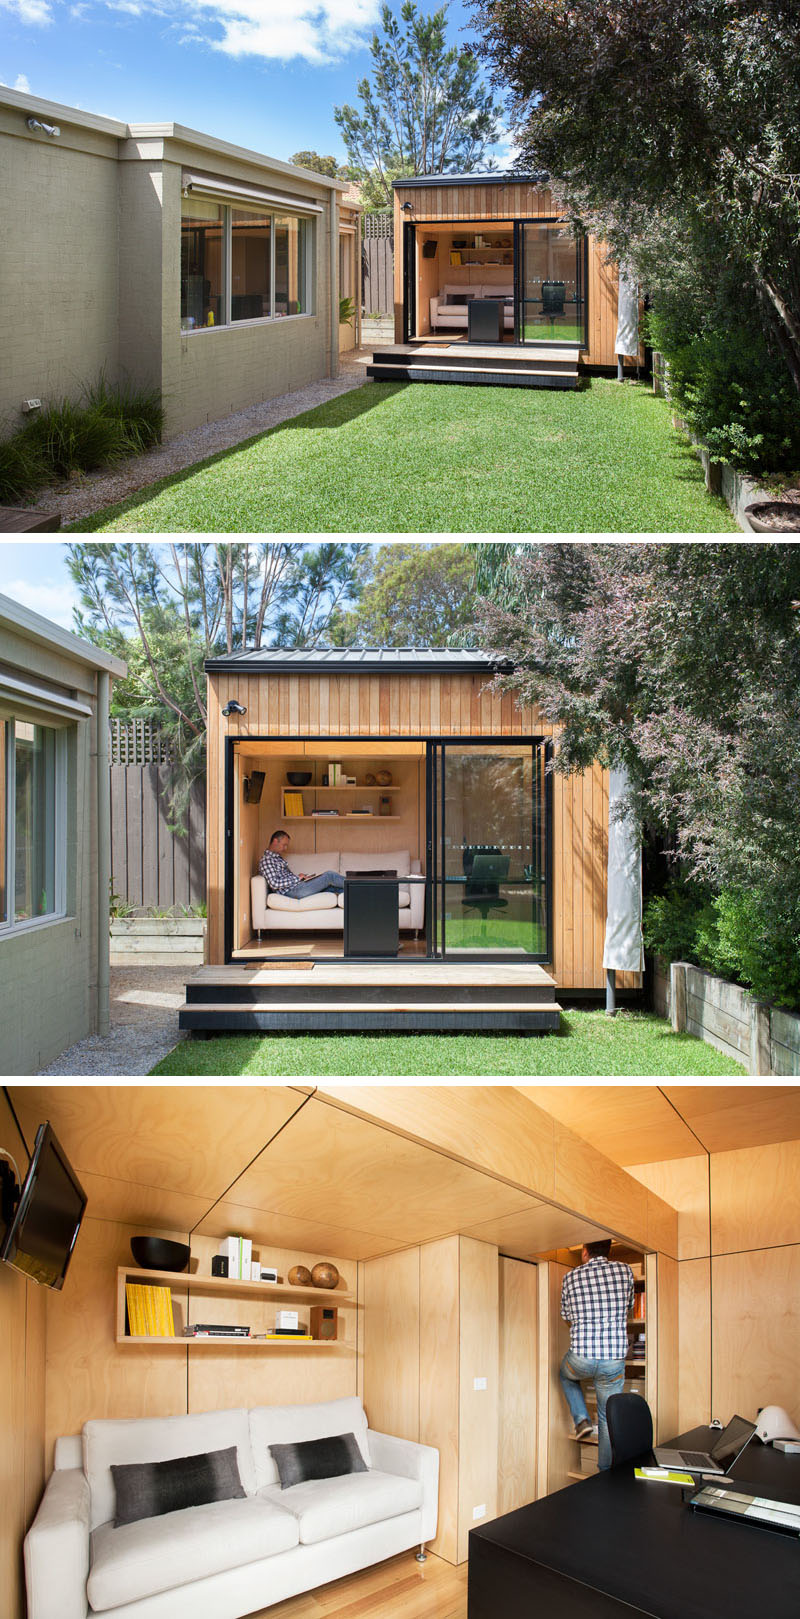 14 Bright Ideas for Backyard Offices, Studios and Guest Houses on Backyard House Ideas id=91726